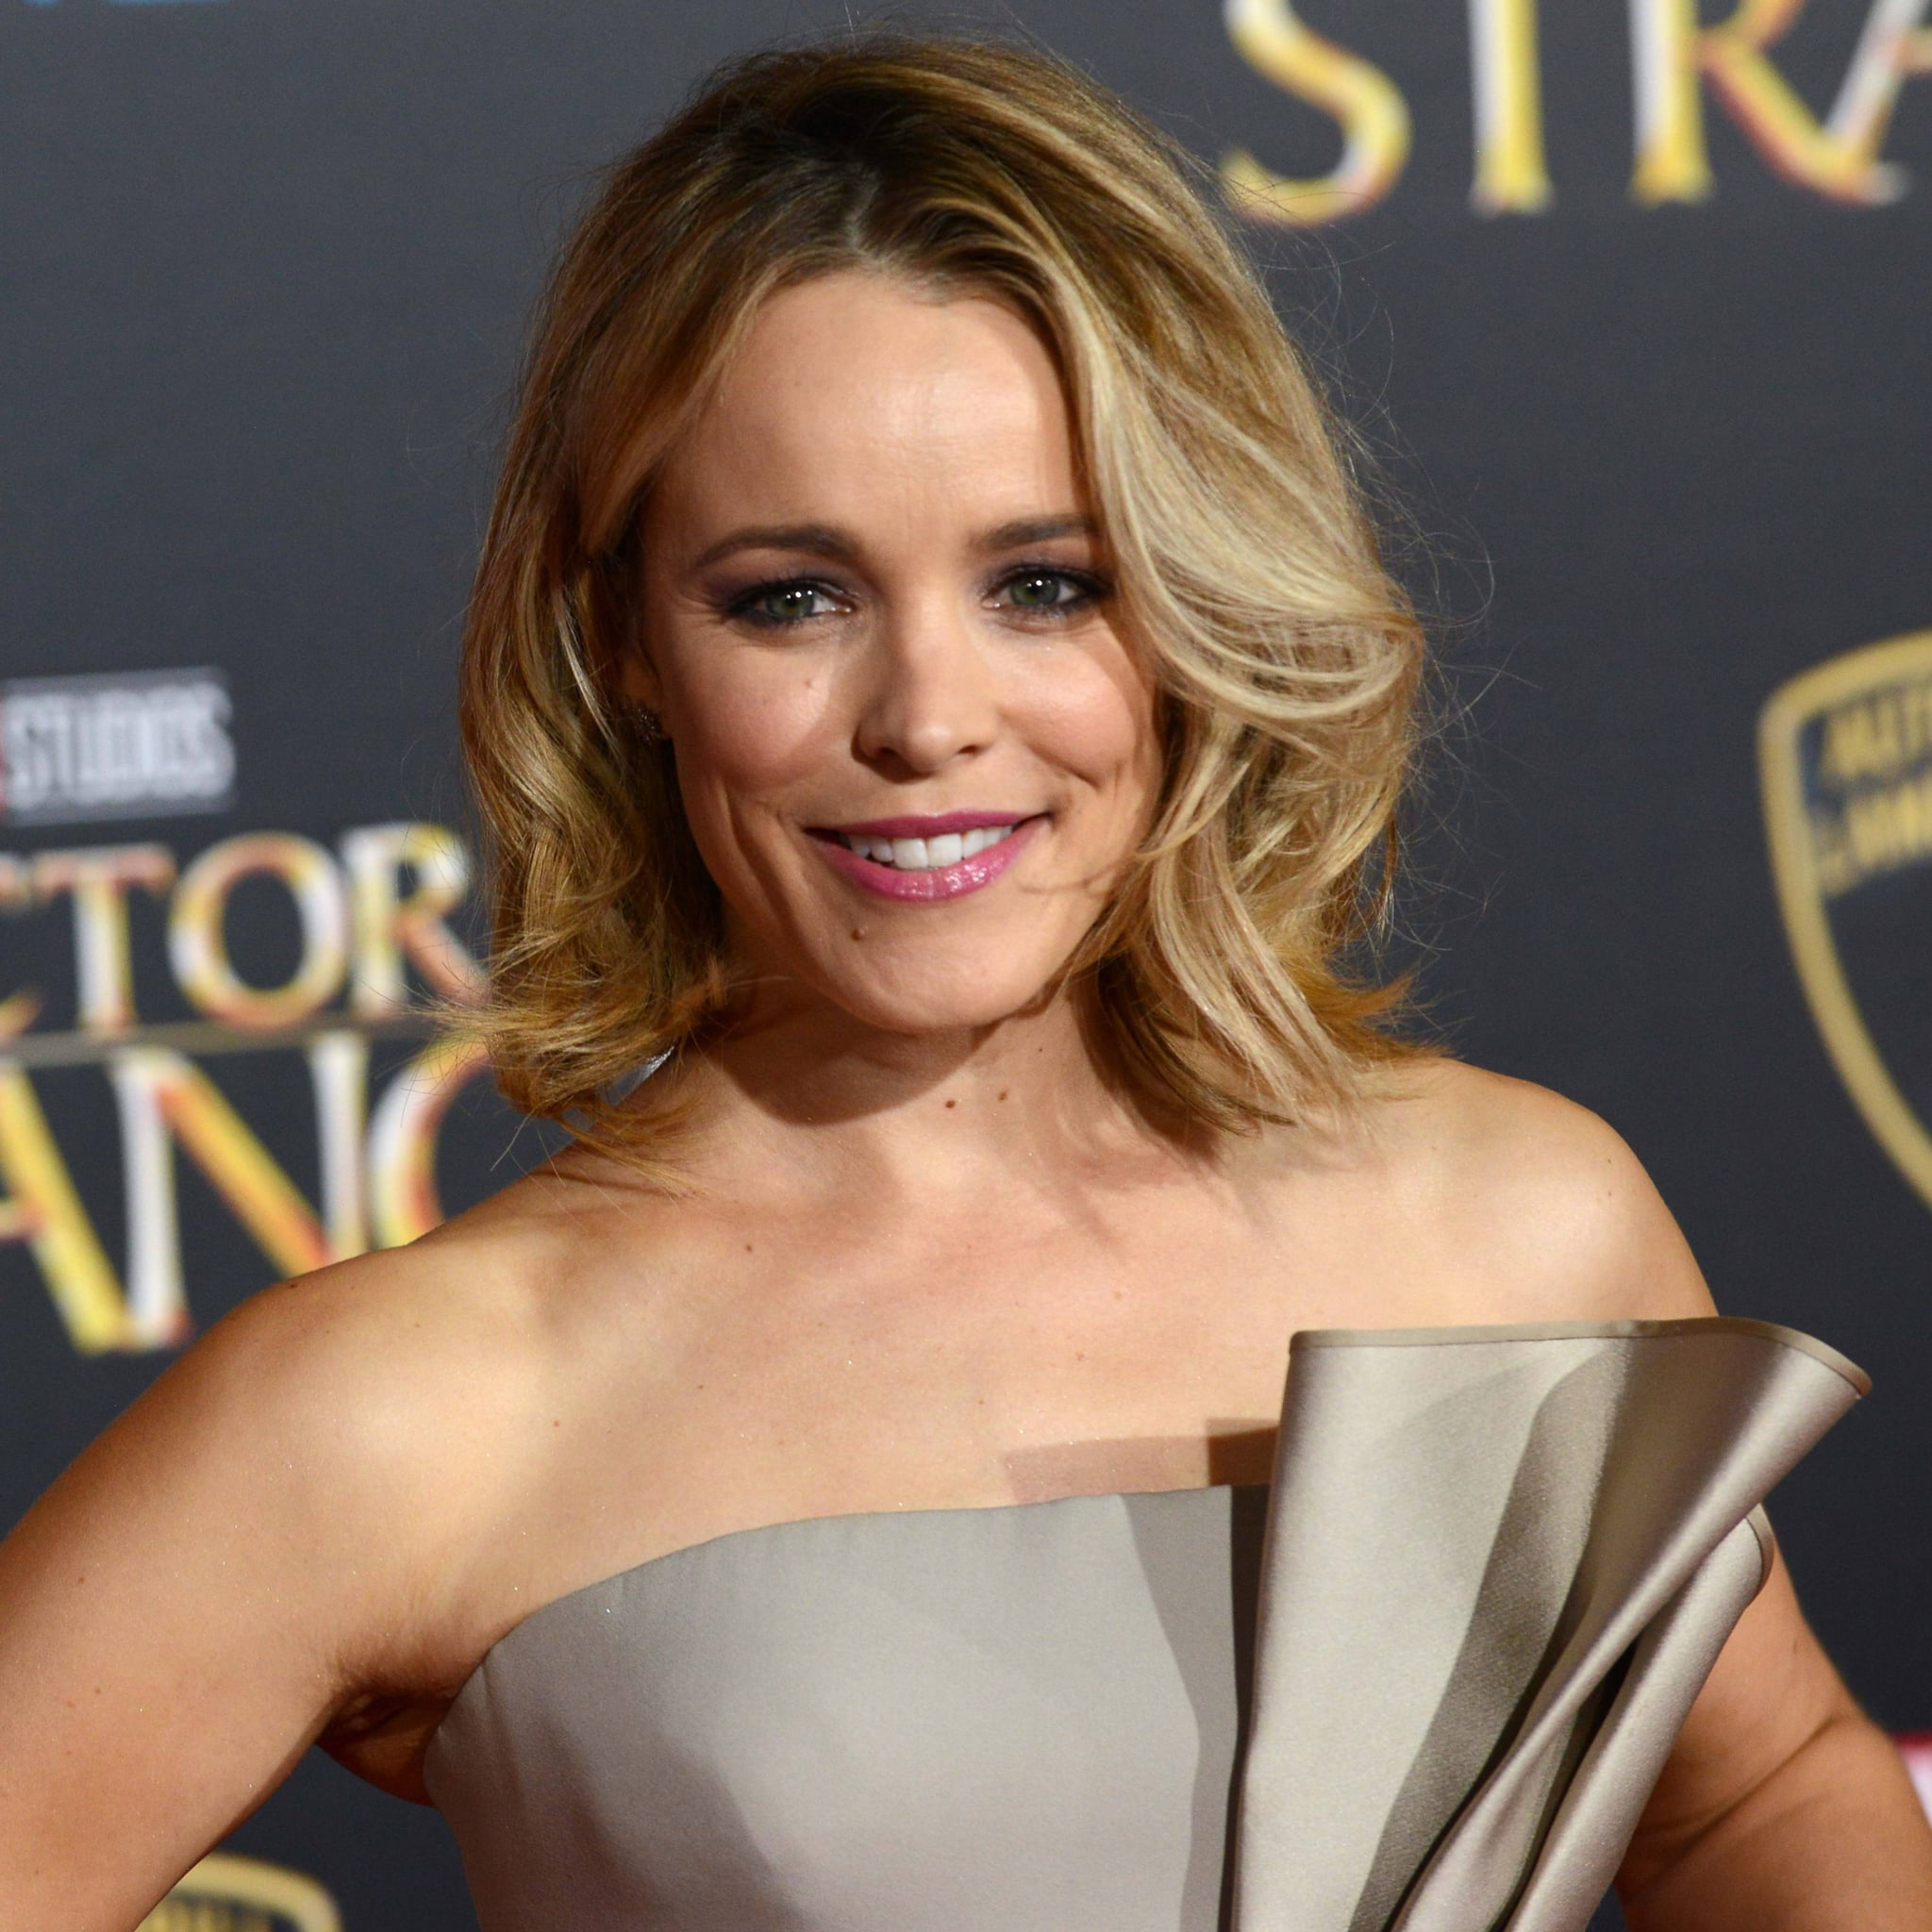 Rachel mcadams dating patrick